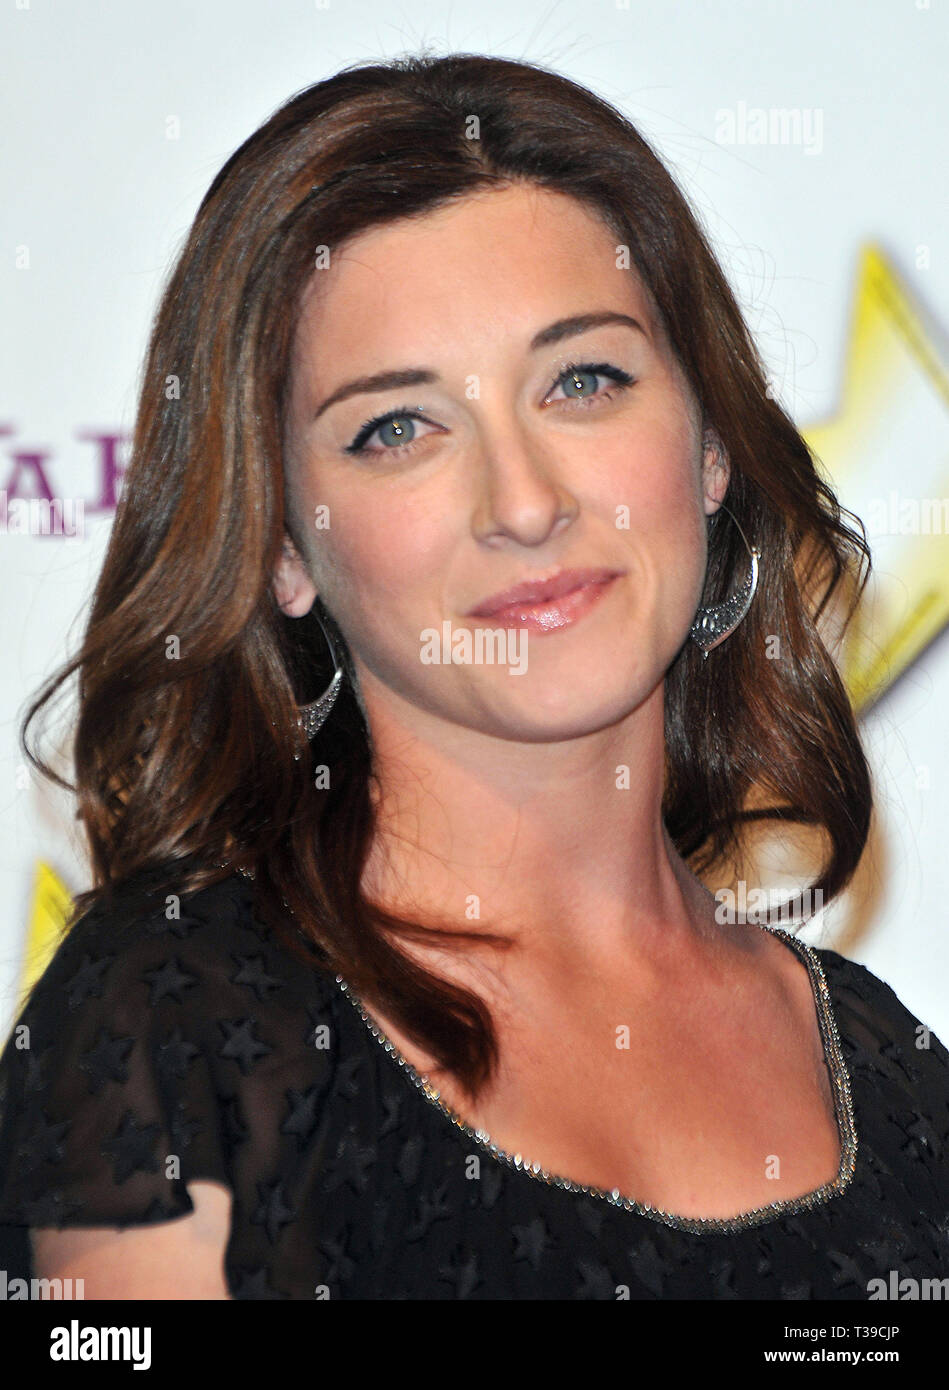 Margo Harshman Showest Awards 2009 At The Paris Hotel In Las Vegas Nvharshmanmargo 21 Red Carpet Event Vertical Usa Film Industry Celebrities Photography Bestof Arts Culture And Entertainment Topix Celebrities Fashion